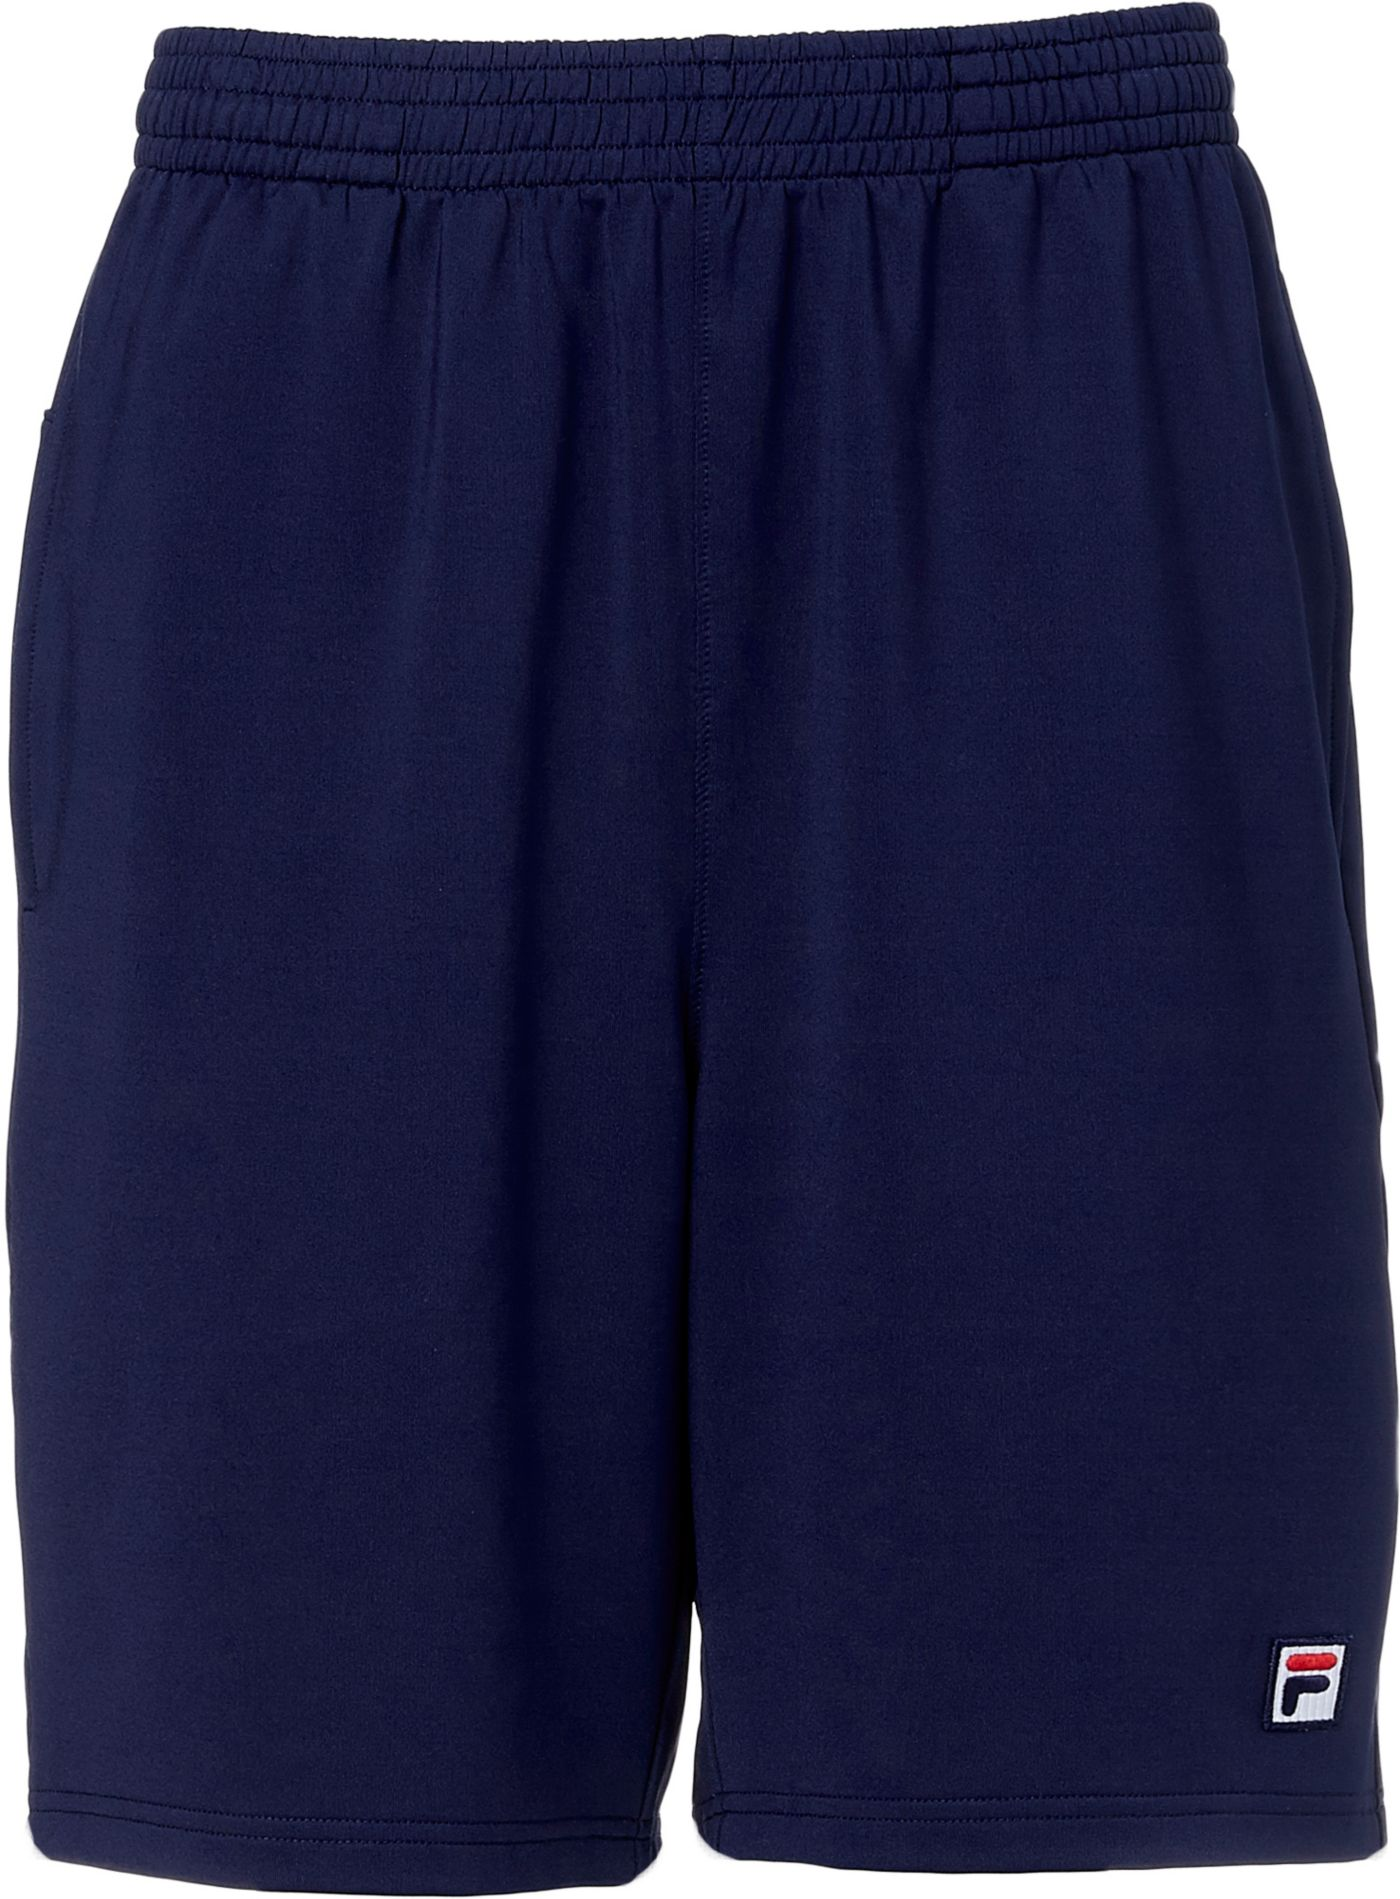 FILA Men's Heritage Tennis Shorts